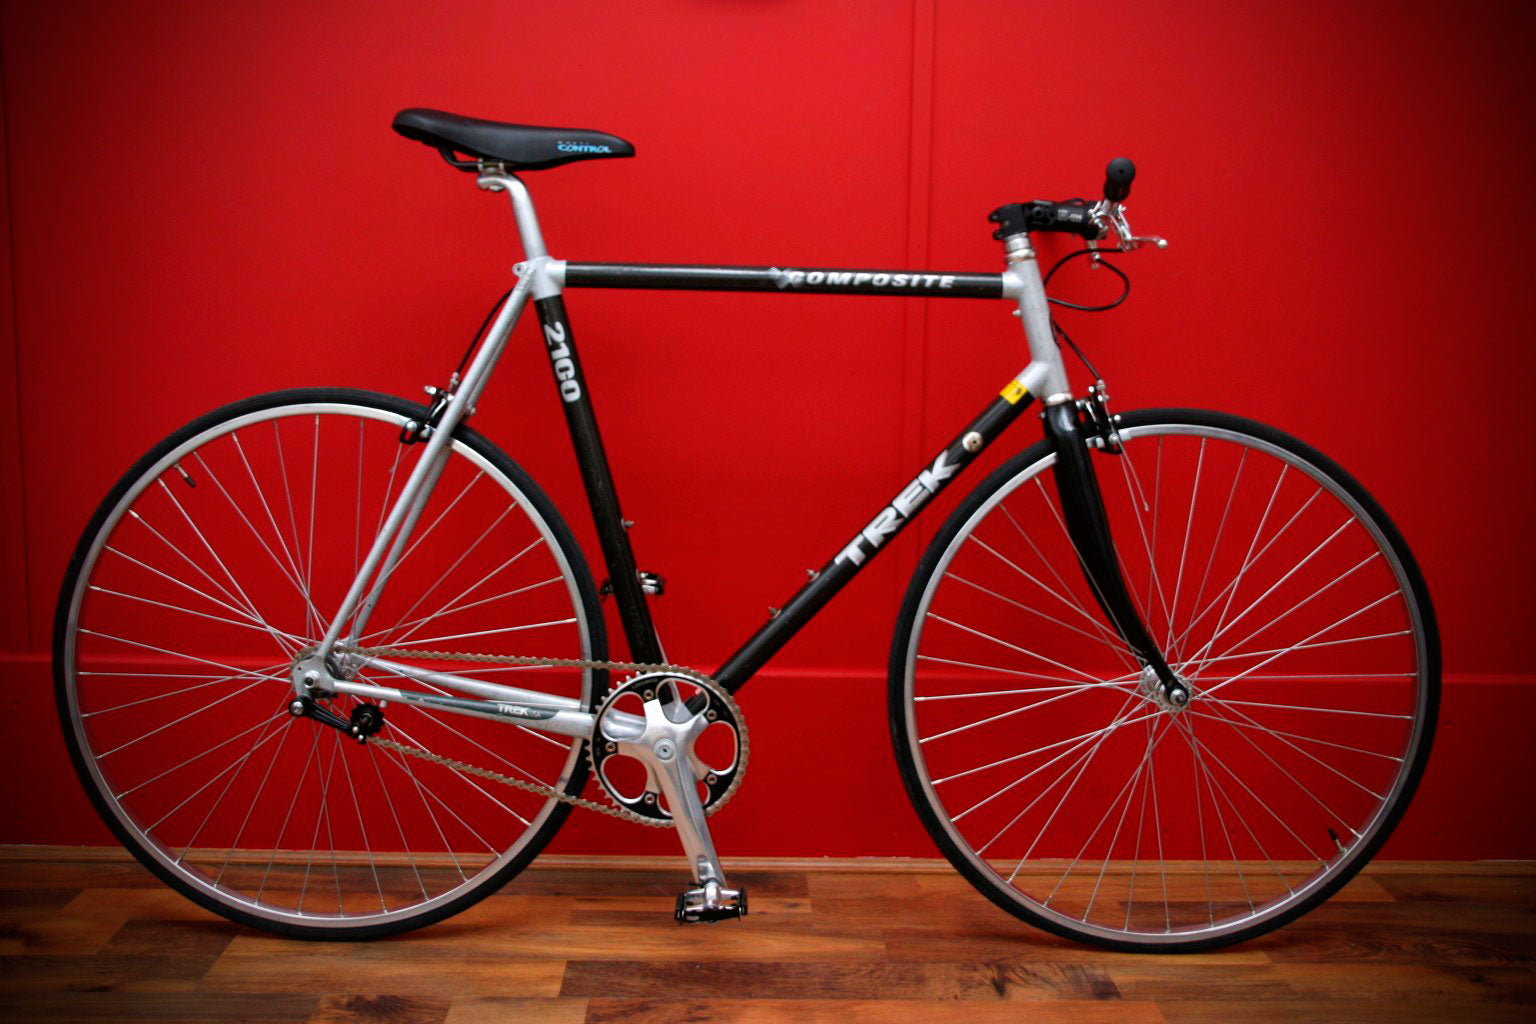 trek 2100 carbon composite single speed bike